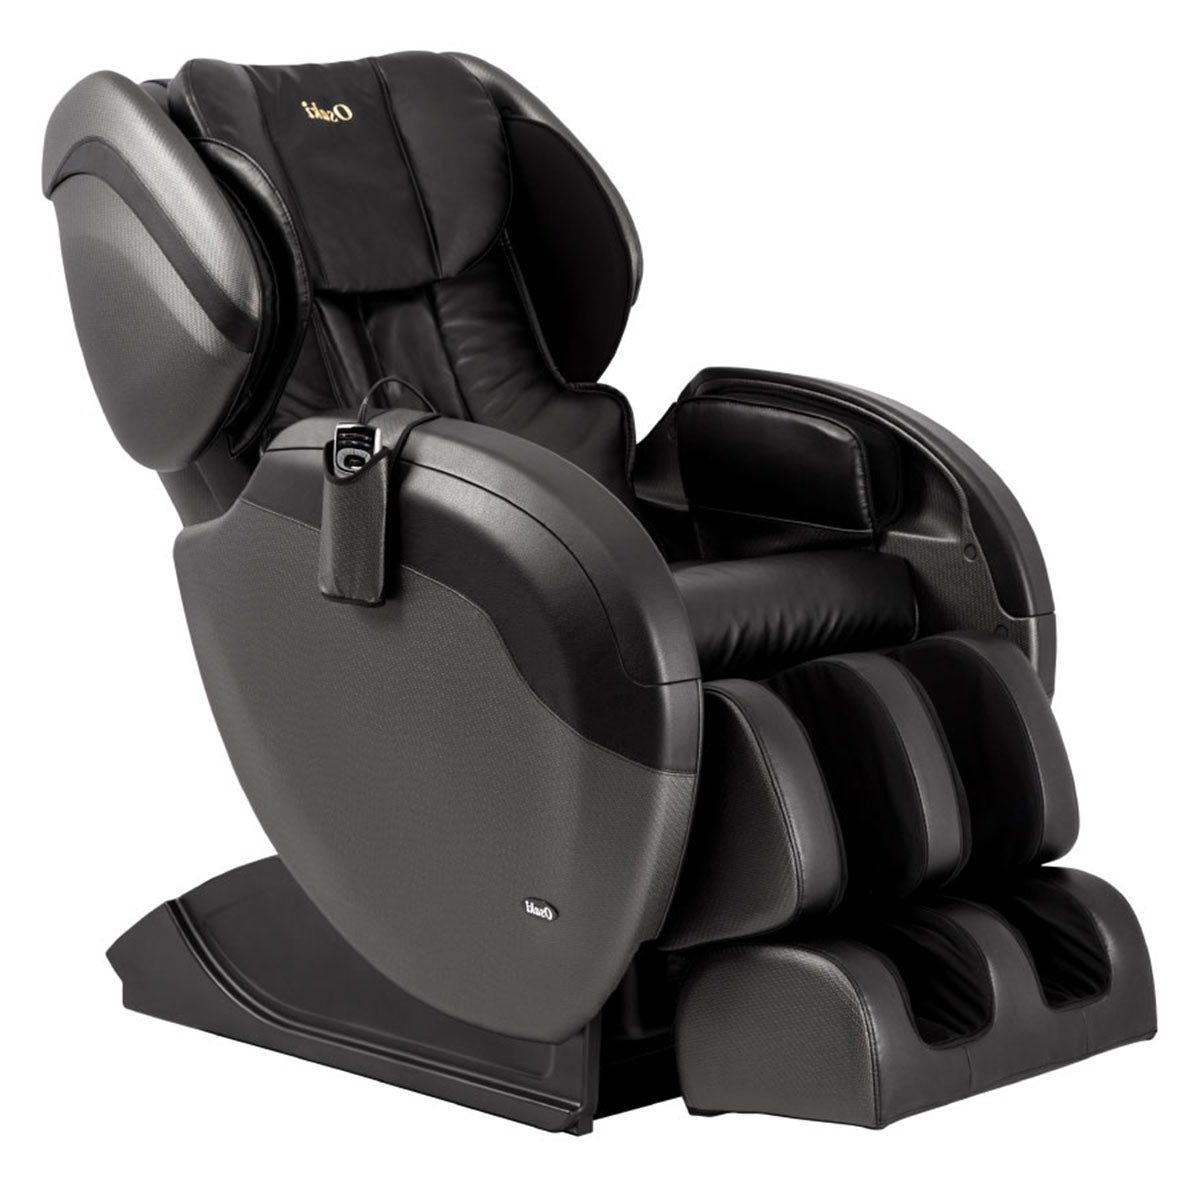 Osaki TW-PRO 3 Massage Chair